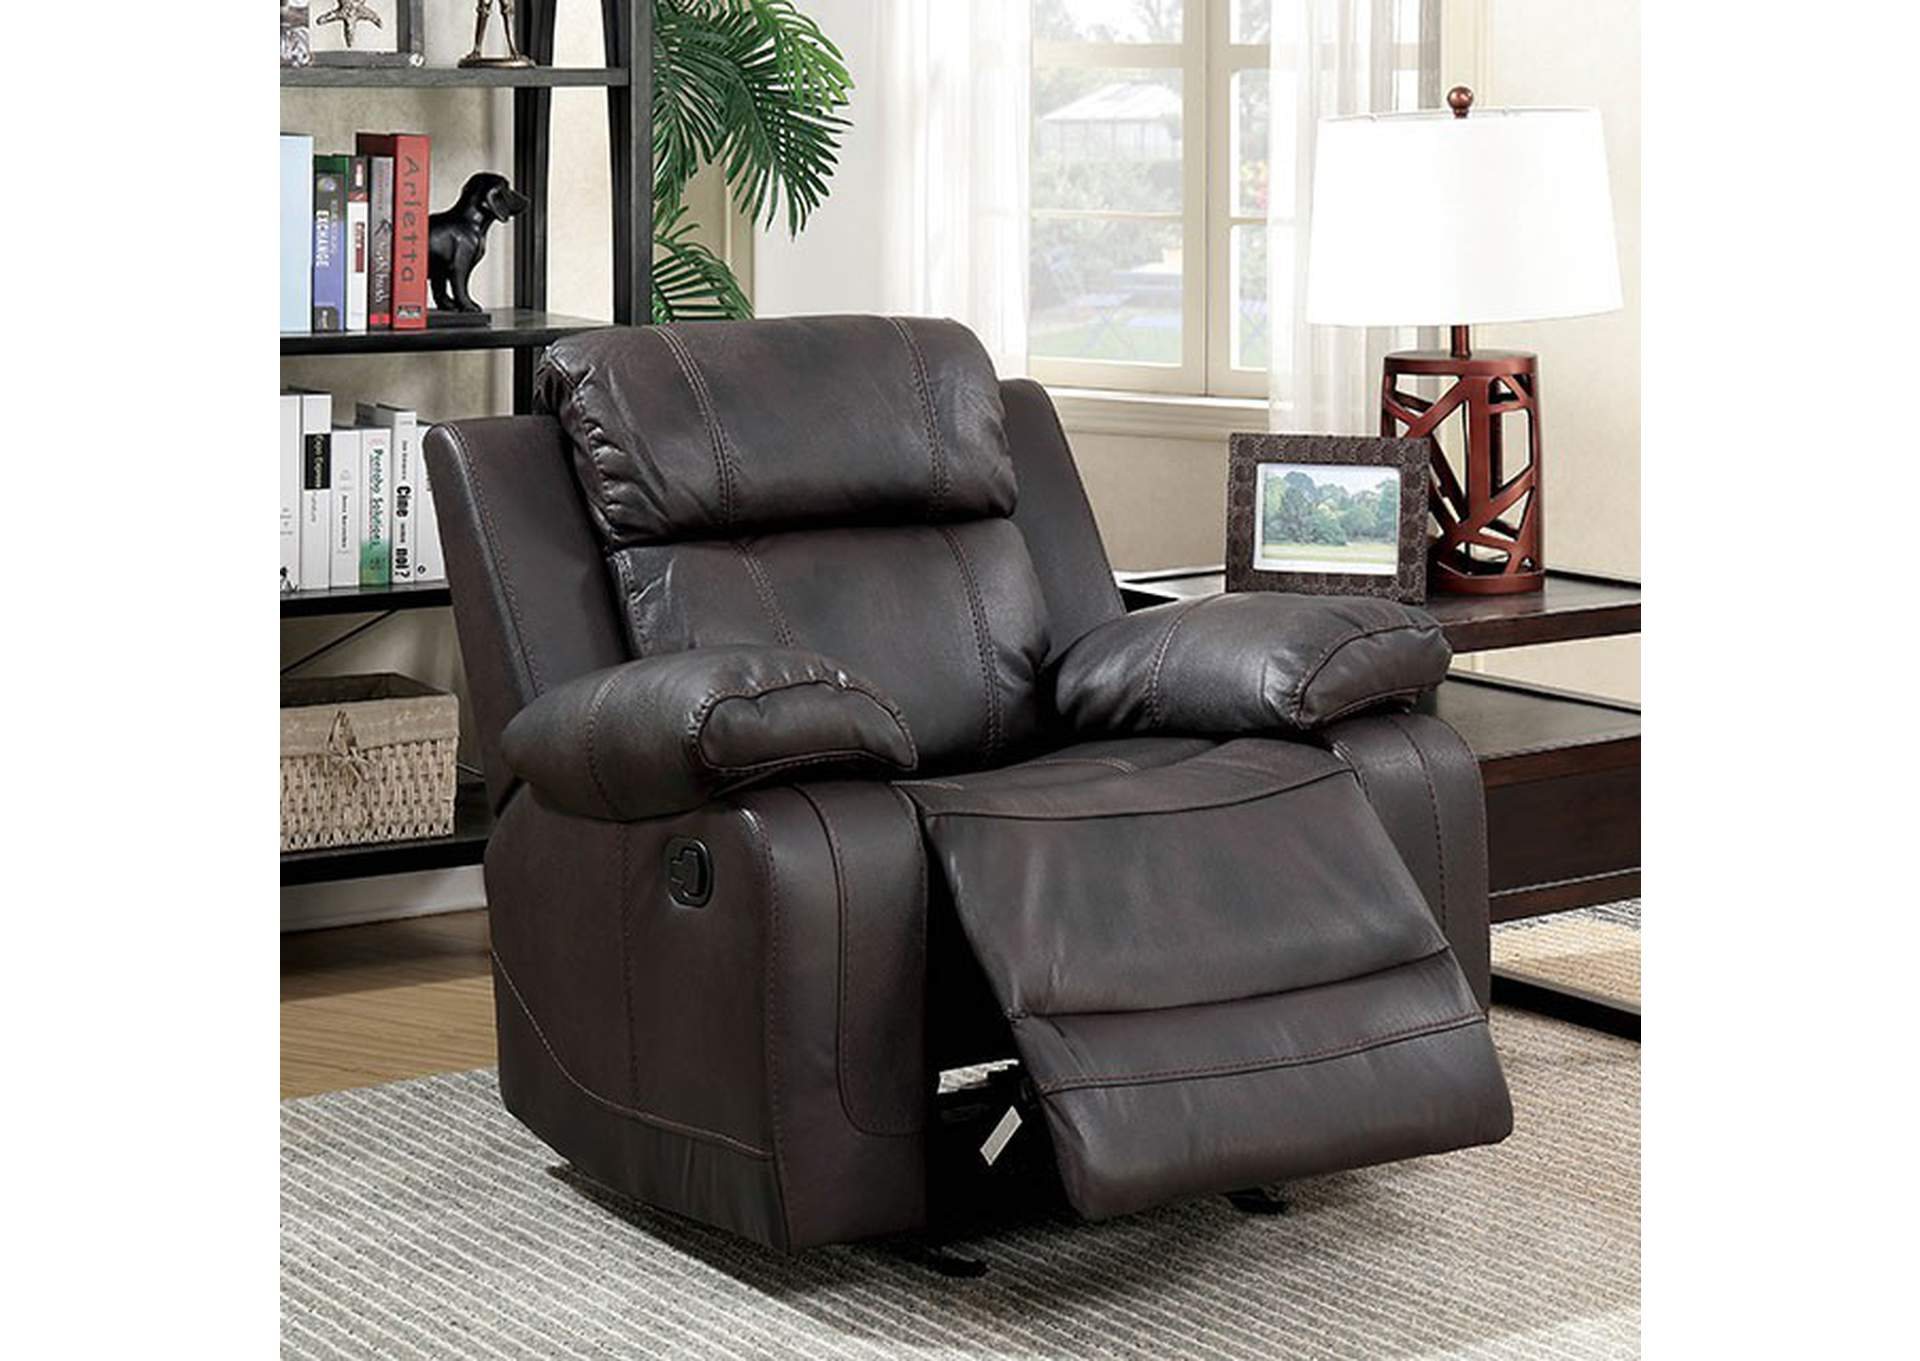 Pondera Dark Brown Recliner,Furniture of America